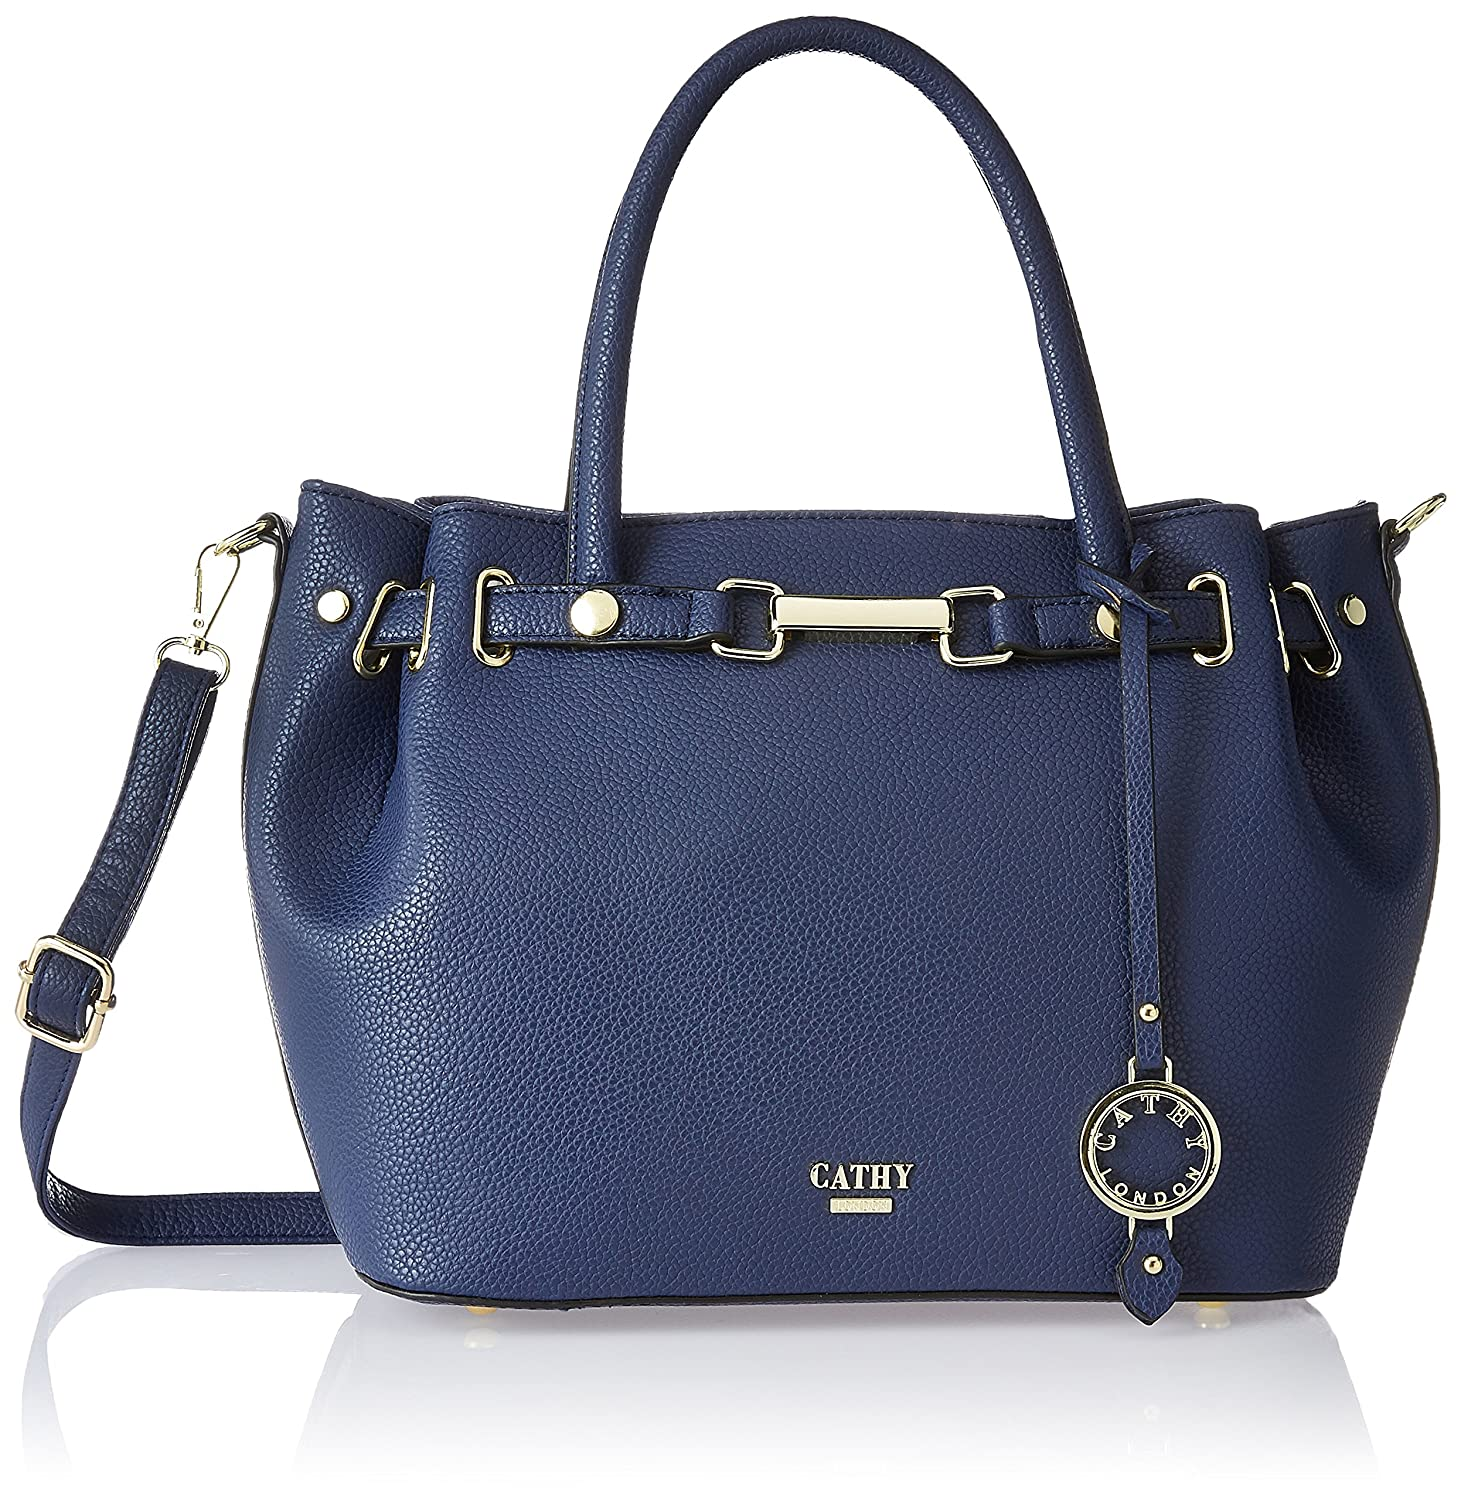 afd1867562 Cathy London Women's Handbag, Colour- Blue, Material- Synthetic Leather:  Amazon.in: Shoes & Handbags